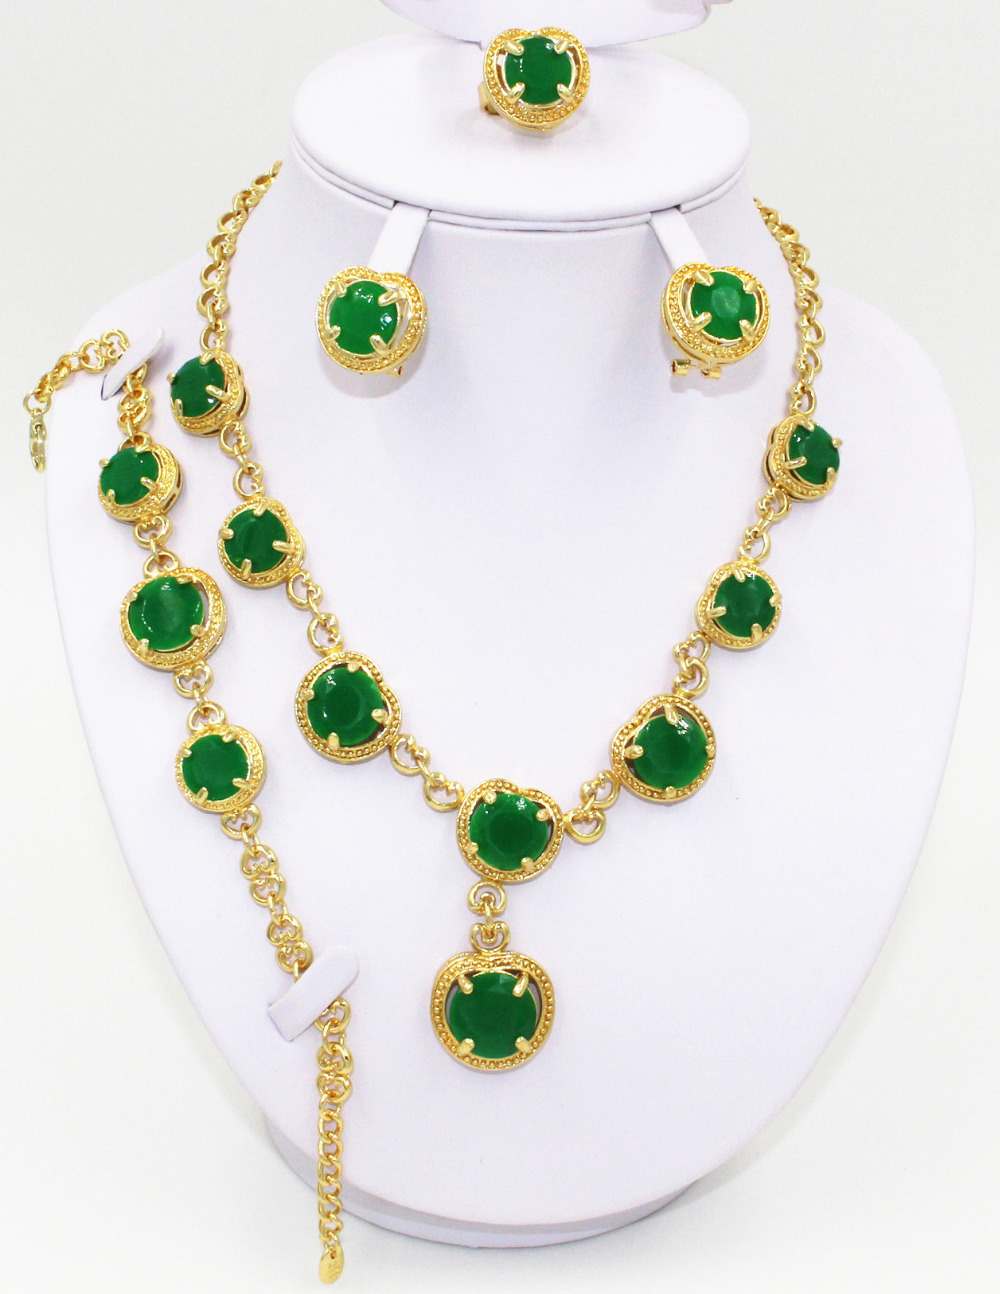 Free shipping! Fashion green African wedding bridal gold-plated jewelry sets, high quality fashion jewelry accessories jewerly(China (Mainland))